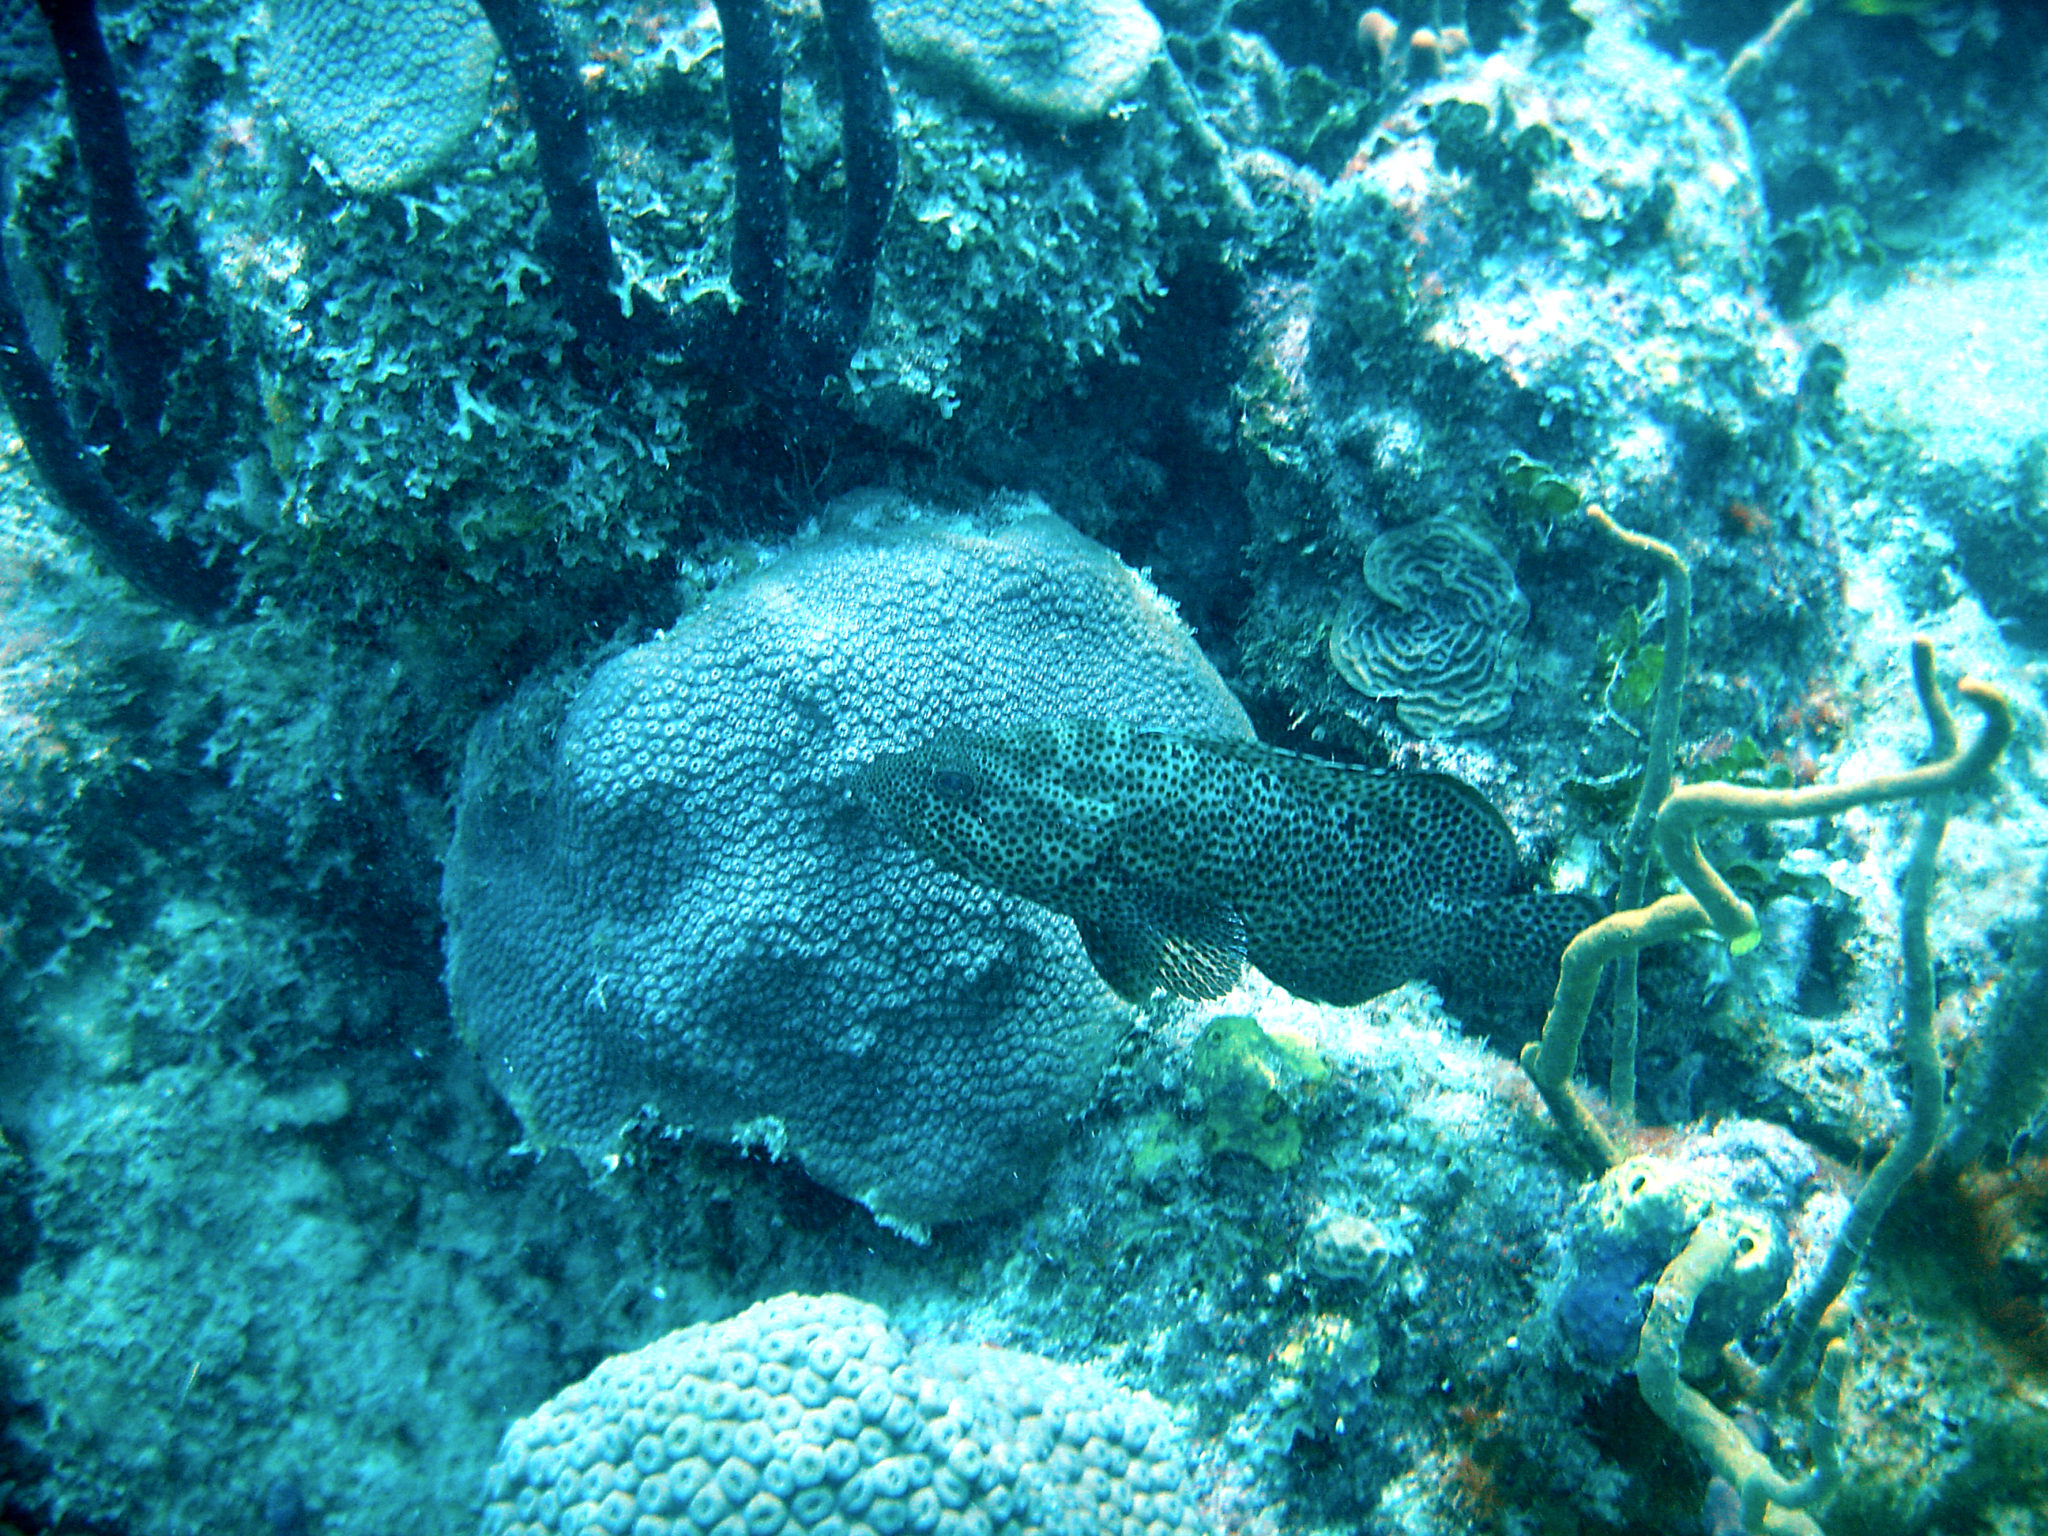 Republique_dominicaine_roadtrip_bayahibe_plongee_atlantic_princess_poisson_coraux